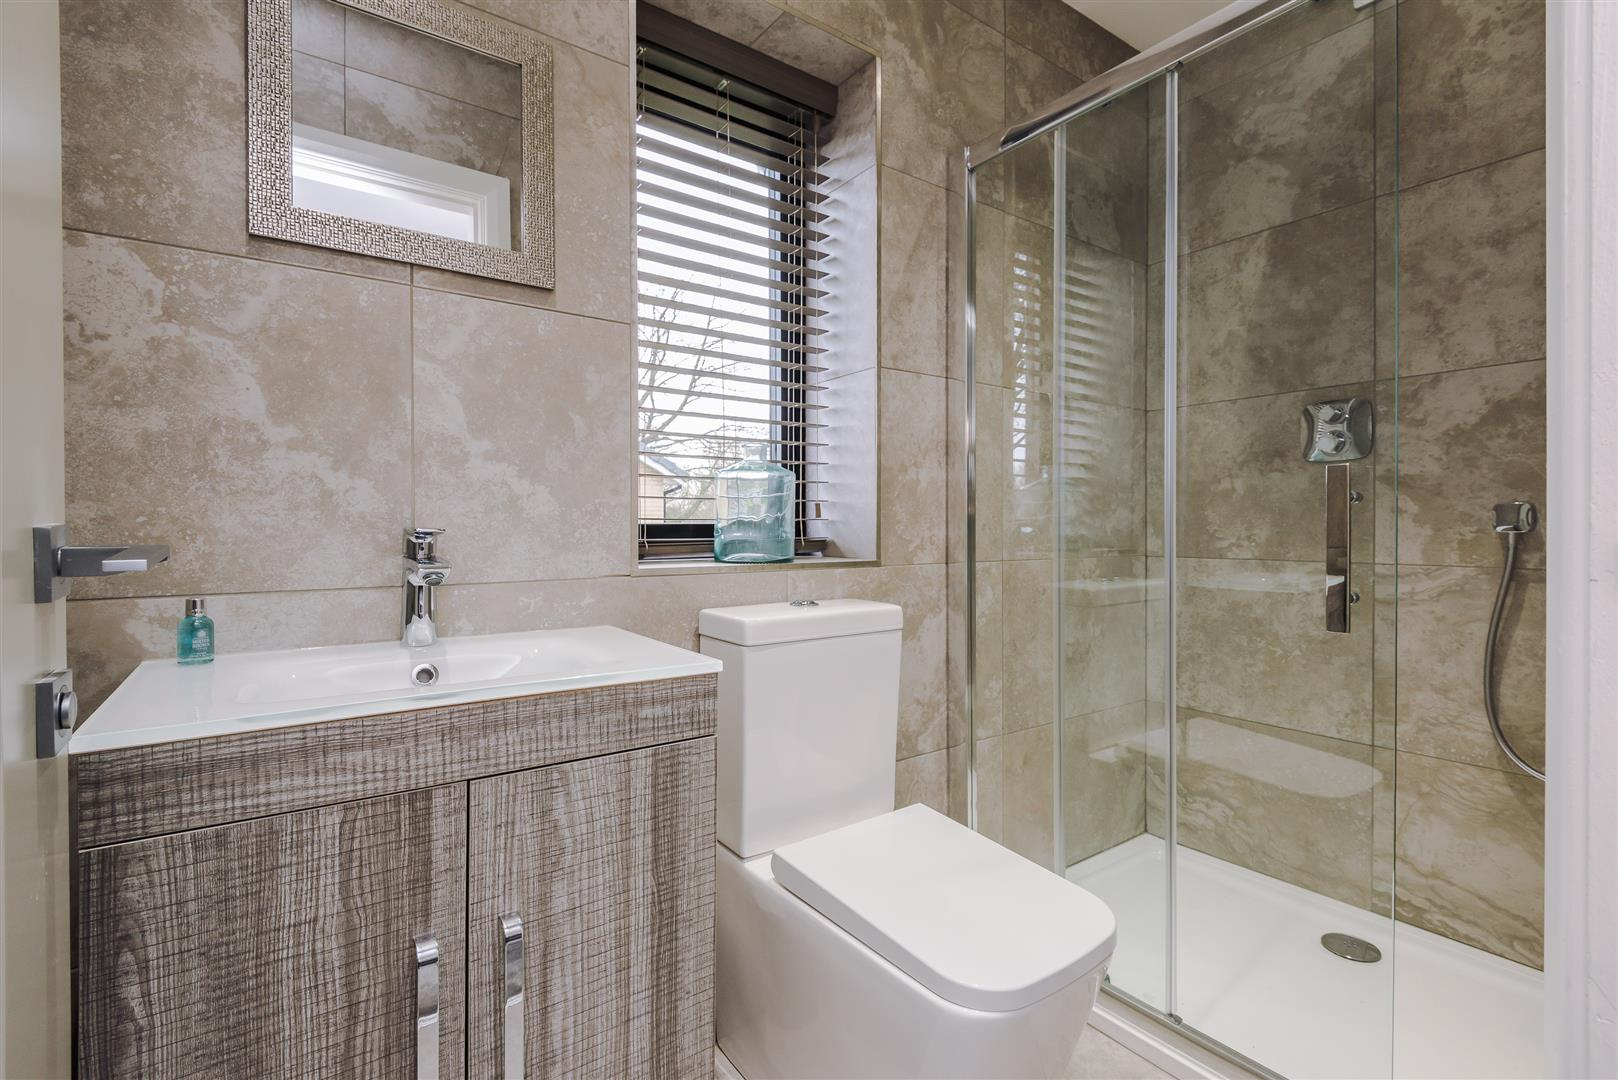 4 bedroom detached house For Sale in Bolton - DSC_9328.jpg.